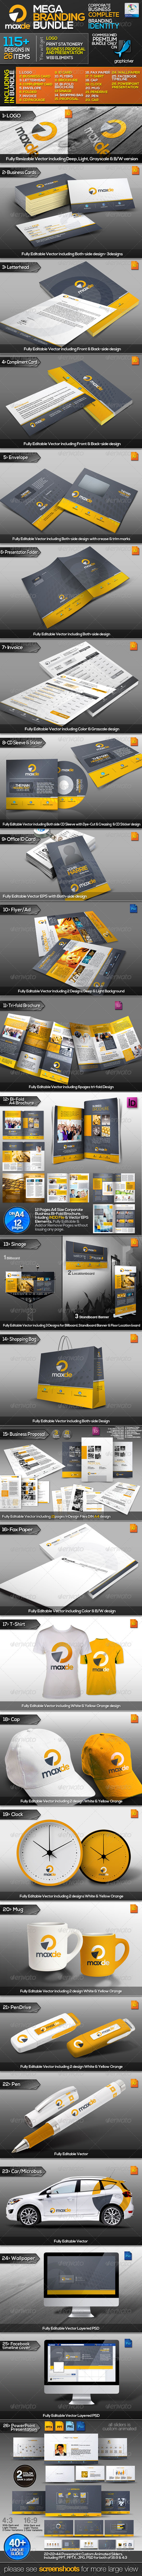 Maxde Corporate Business ID Mega Branding Bundle